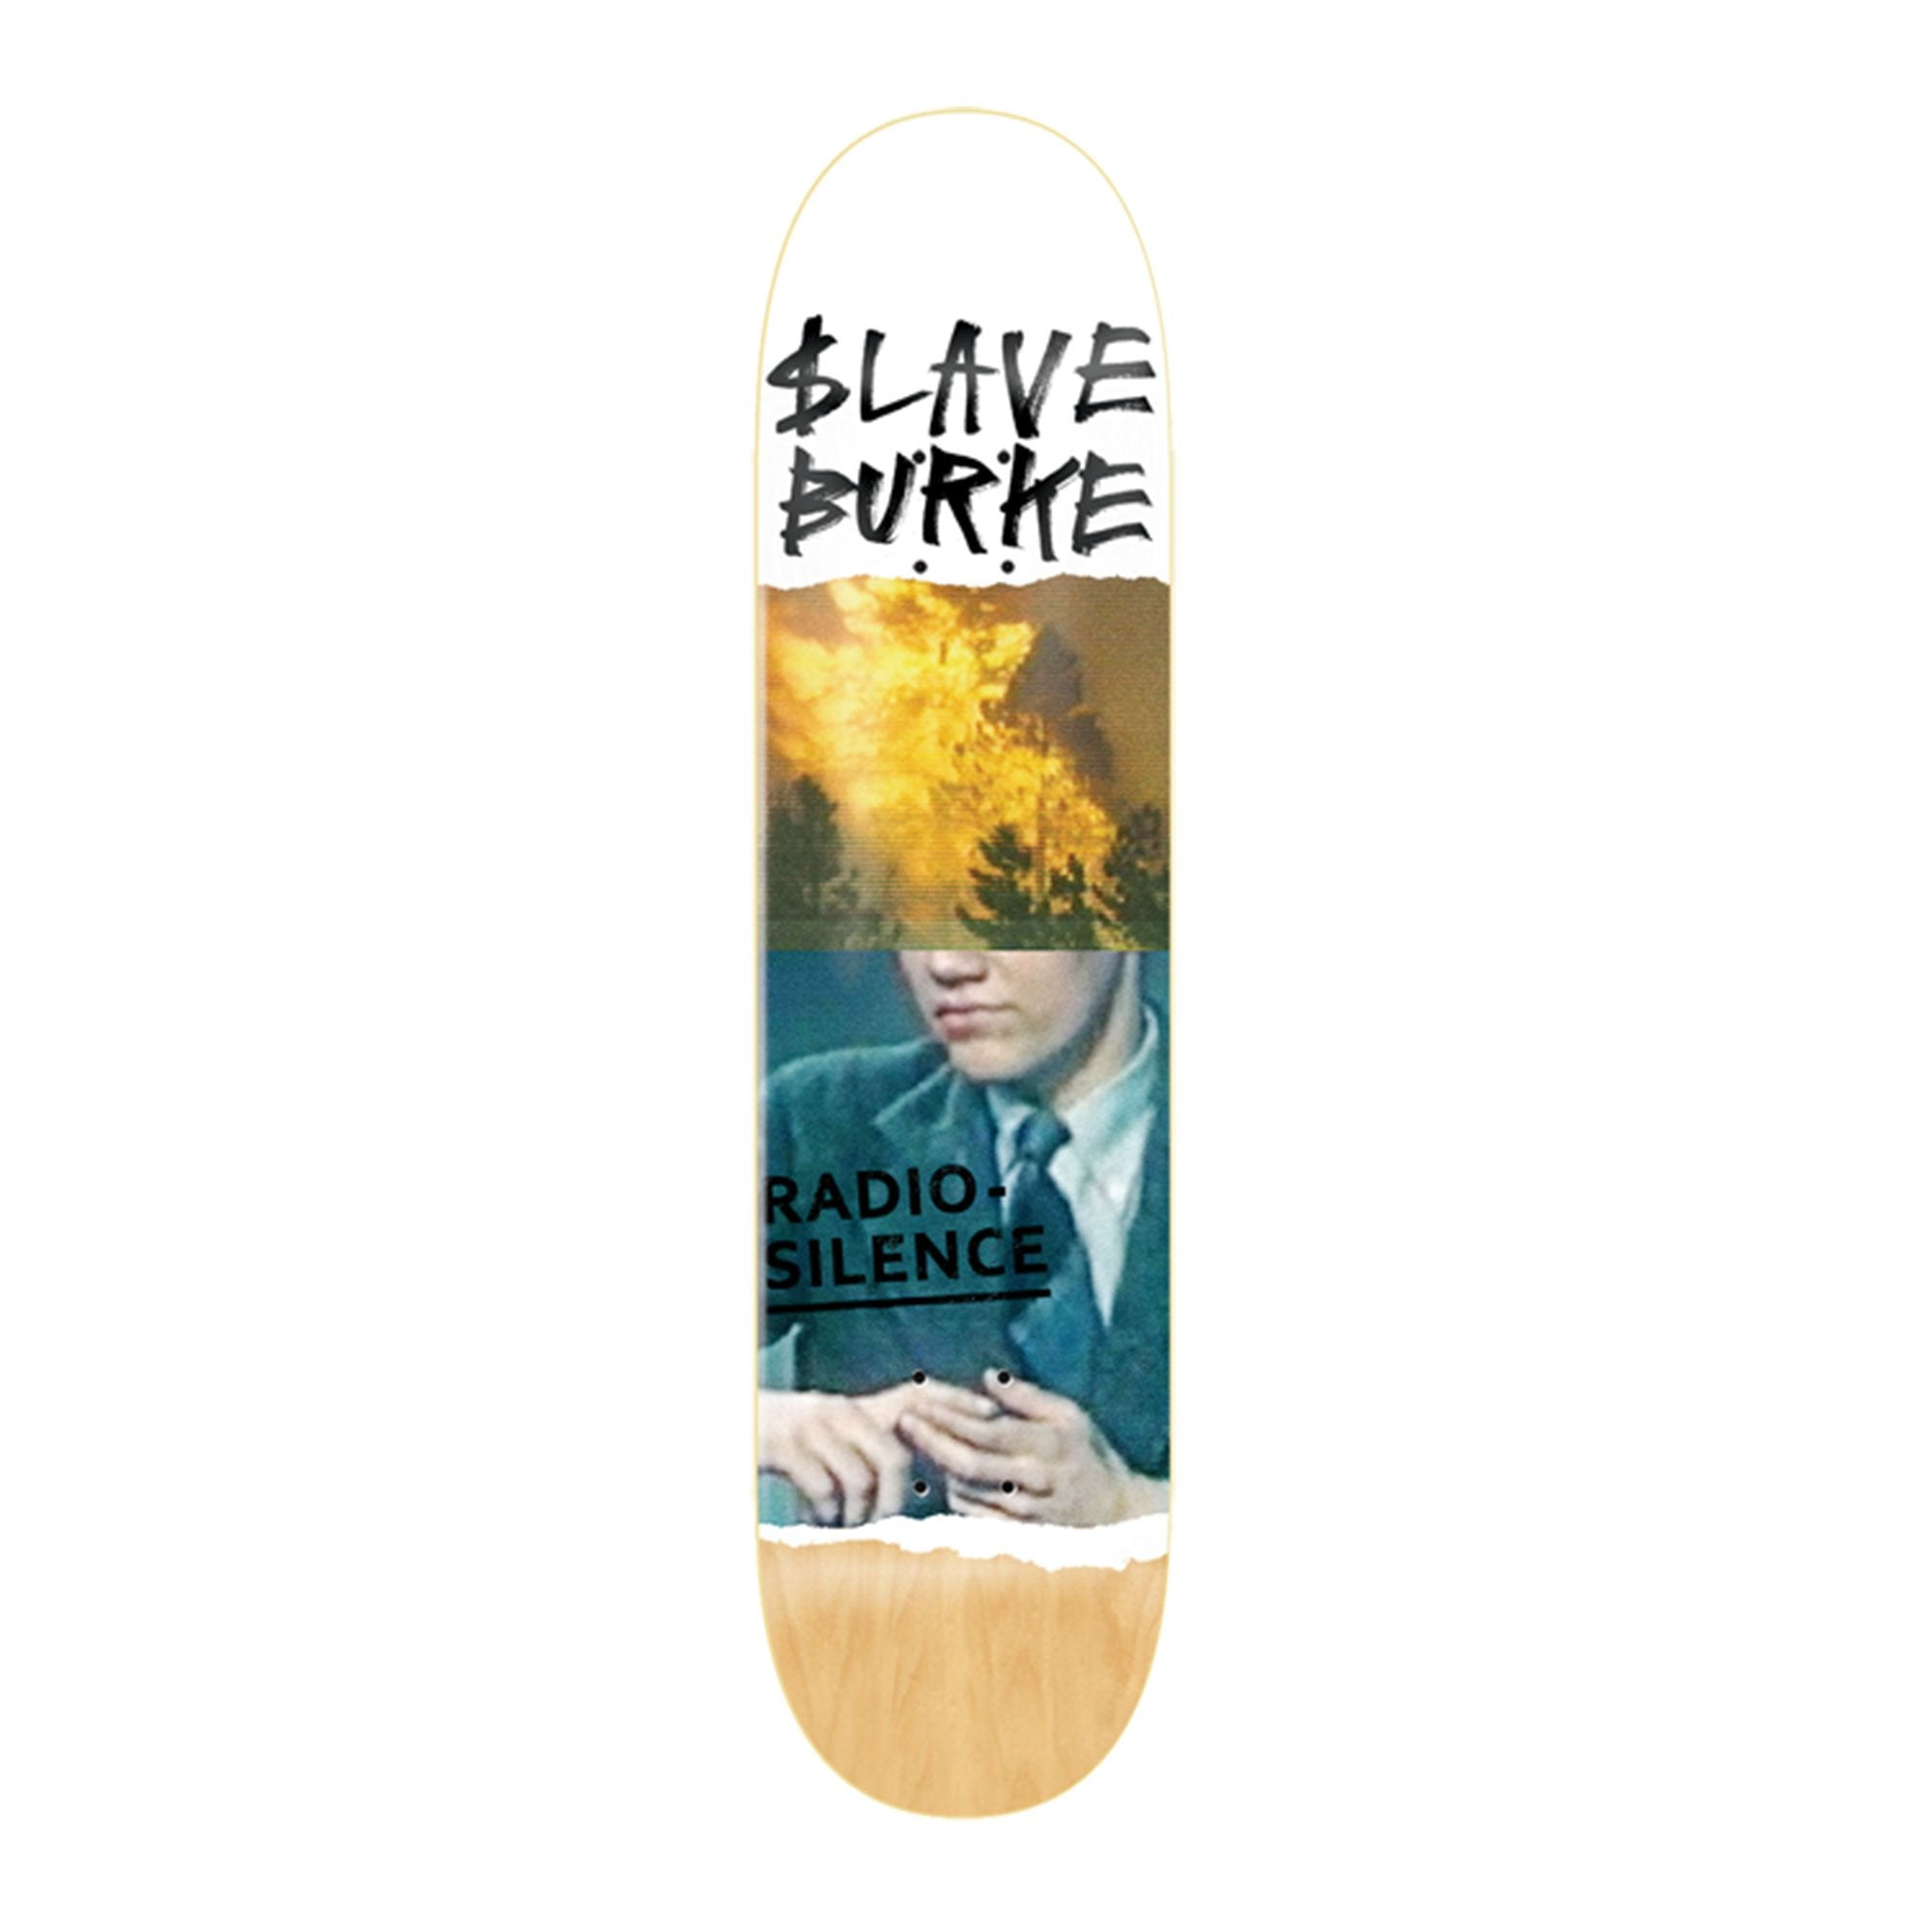 Slave Radio Silence Deck Product Photo #1